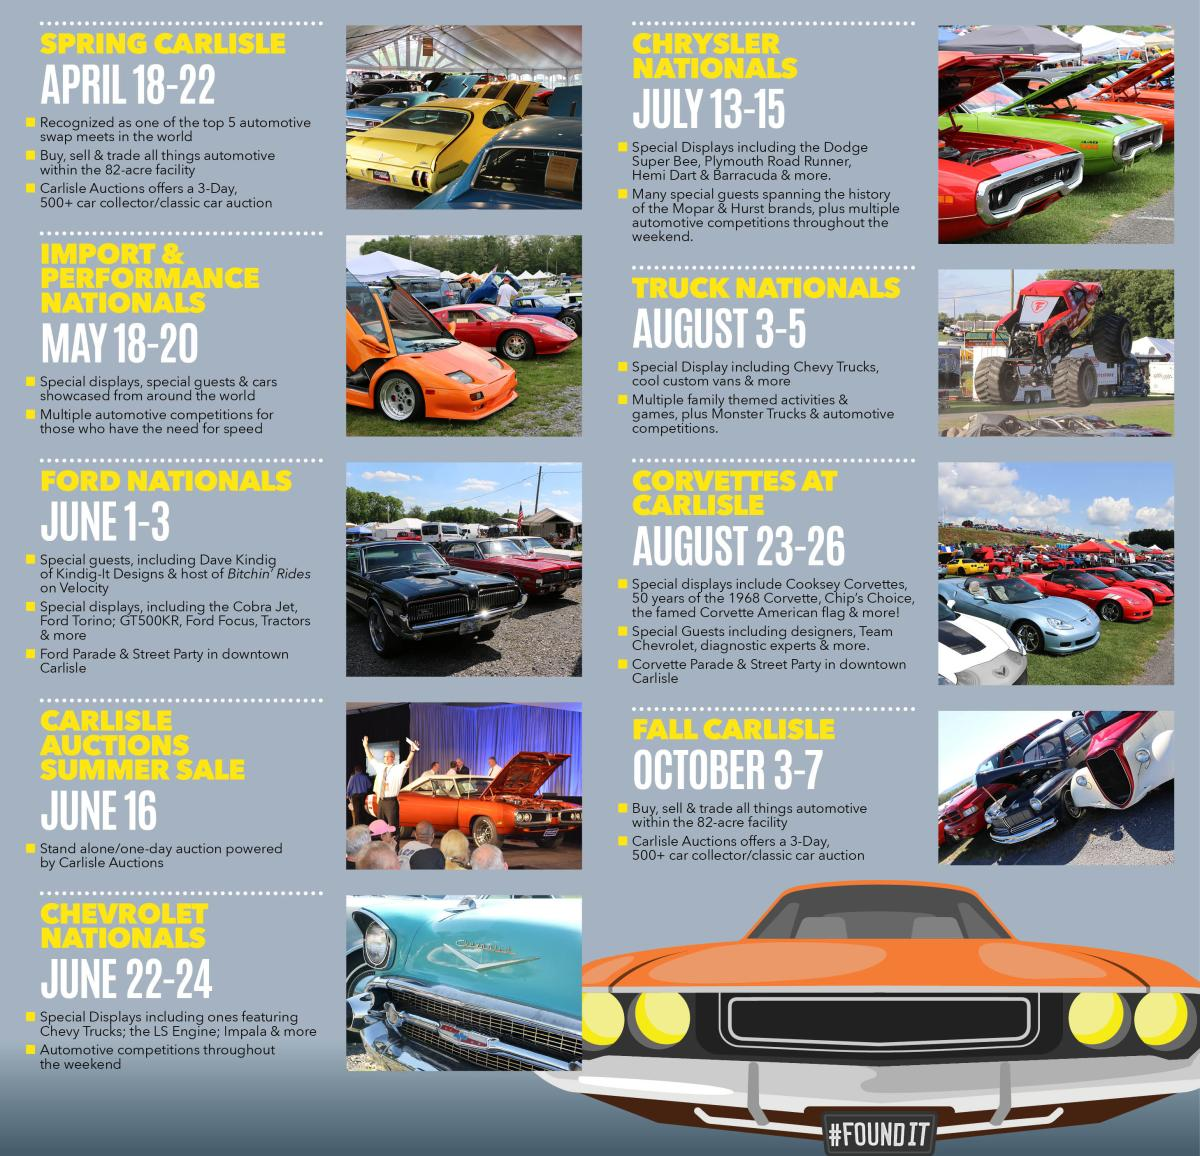 Carlisle Events Car Show Infographic